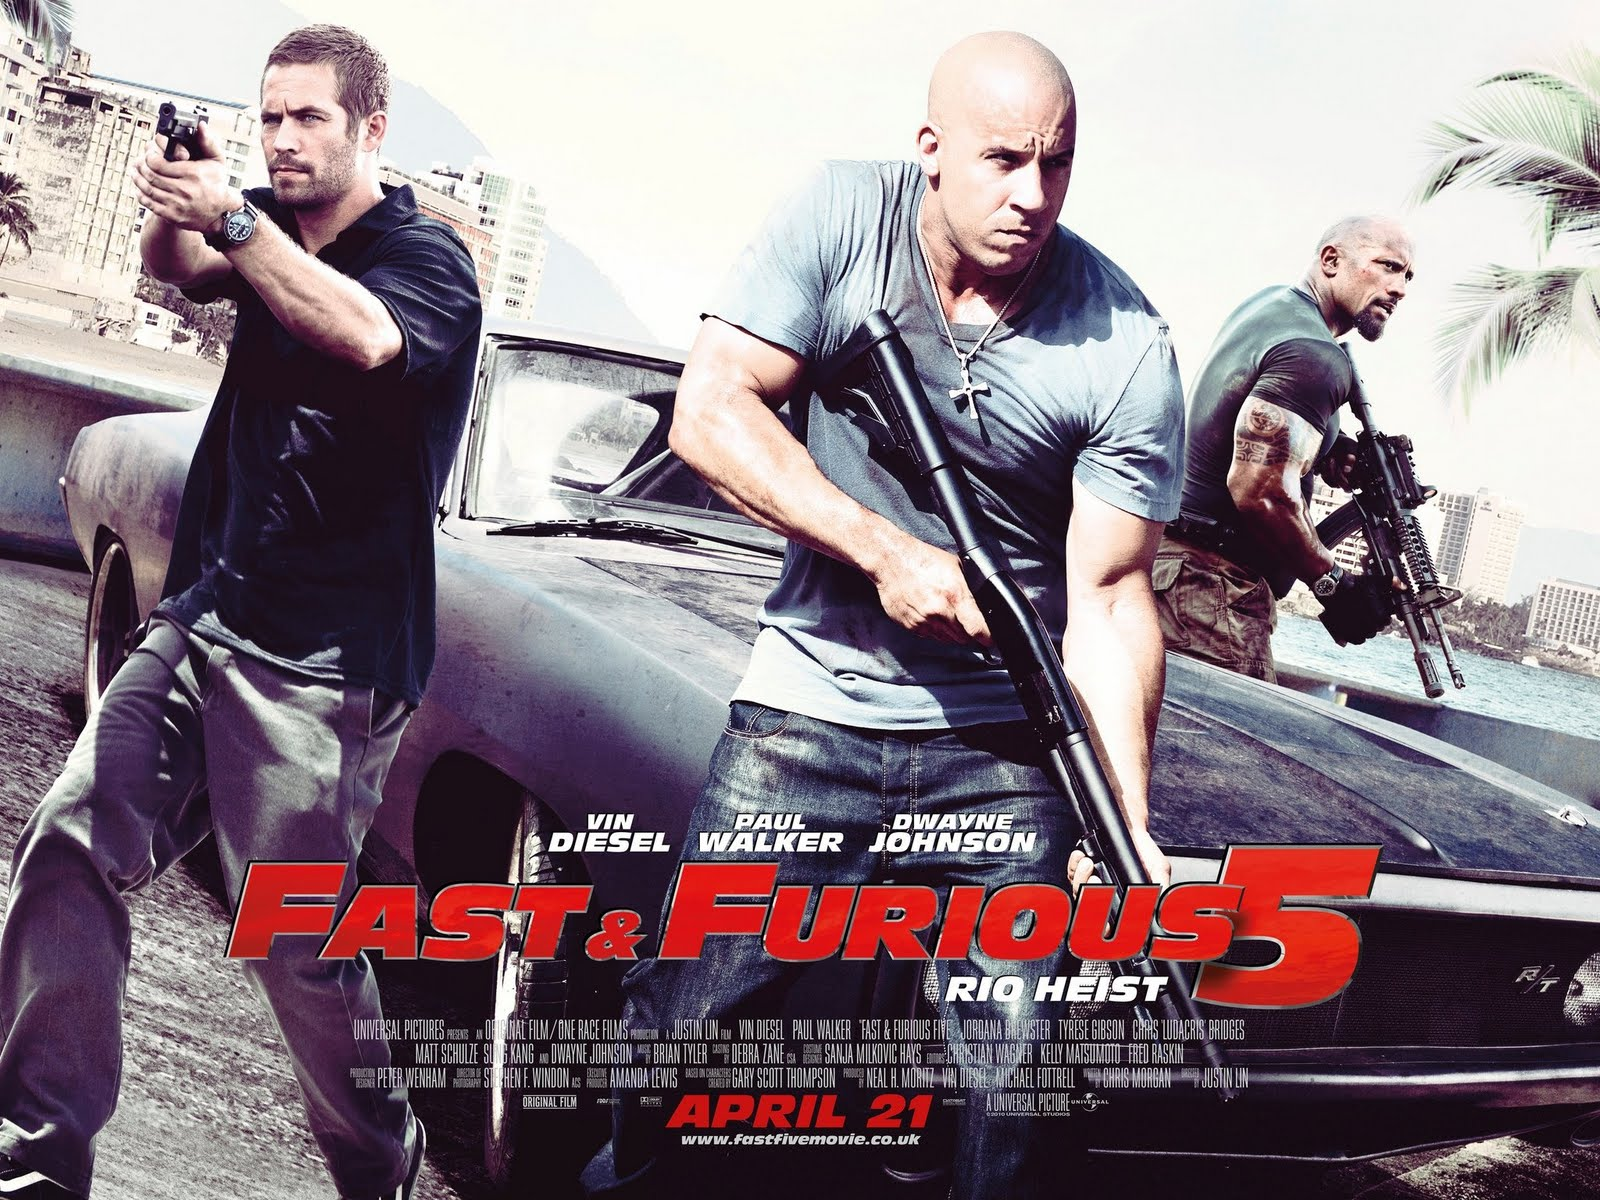 Fast and furious 5 money made